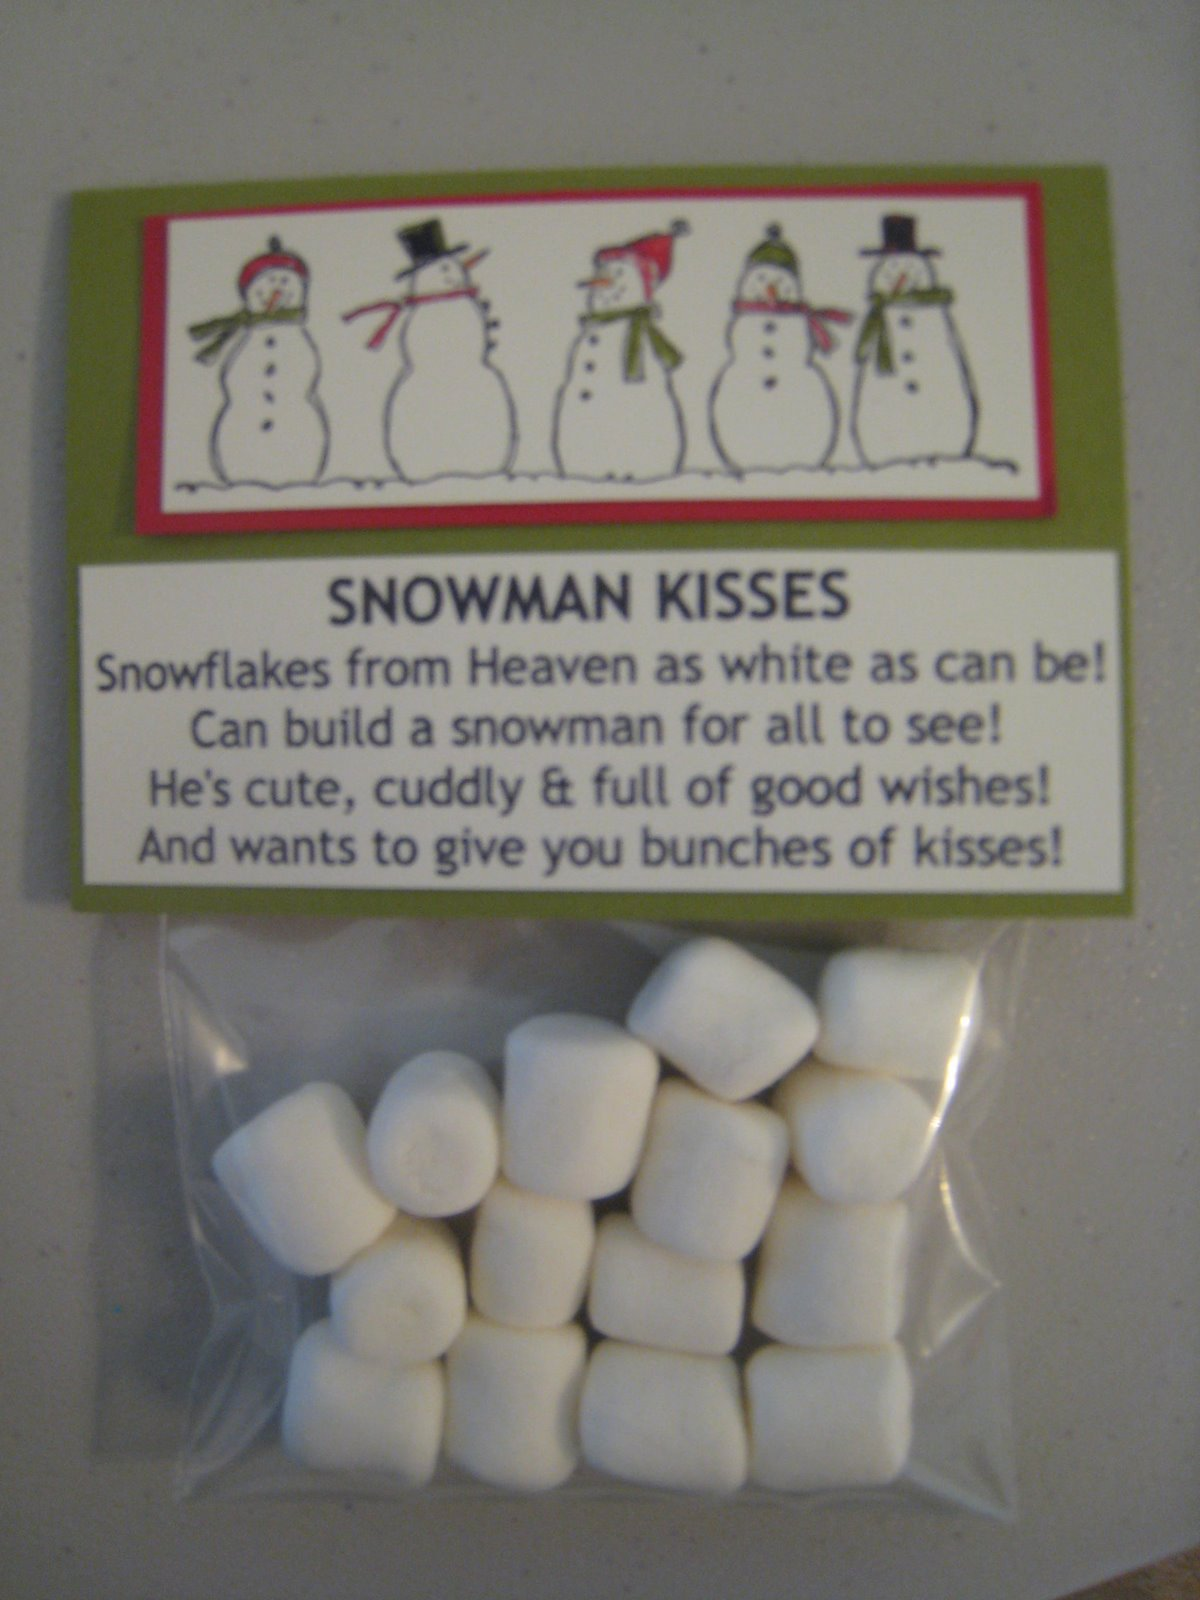 Snowman Poop and Kisses: $1.50 each...colors may vary